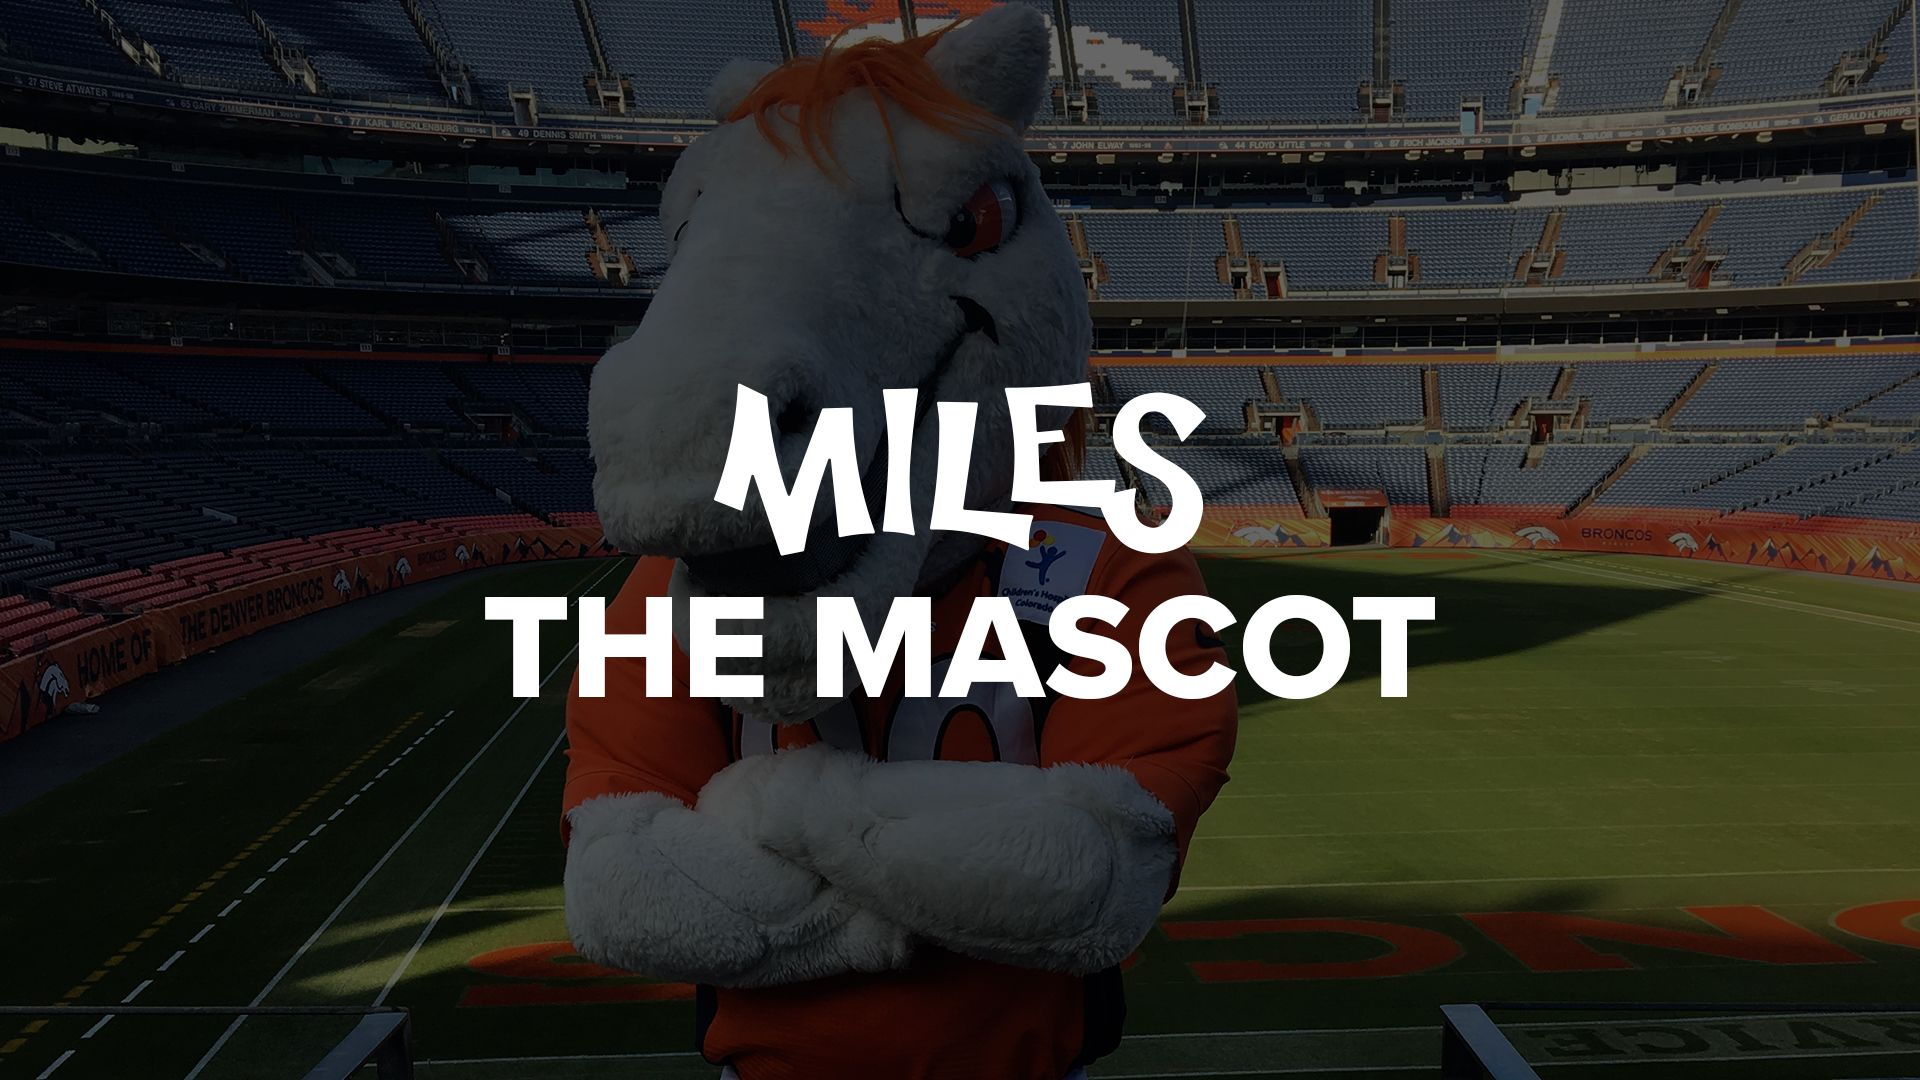 Request Miles the Mascot